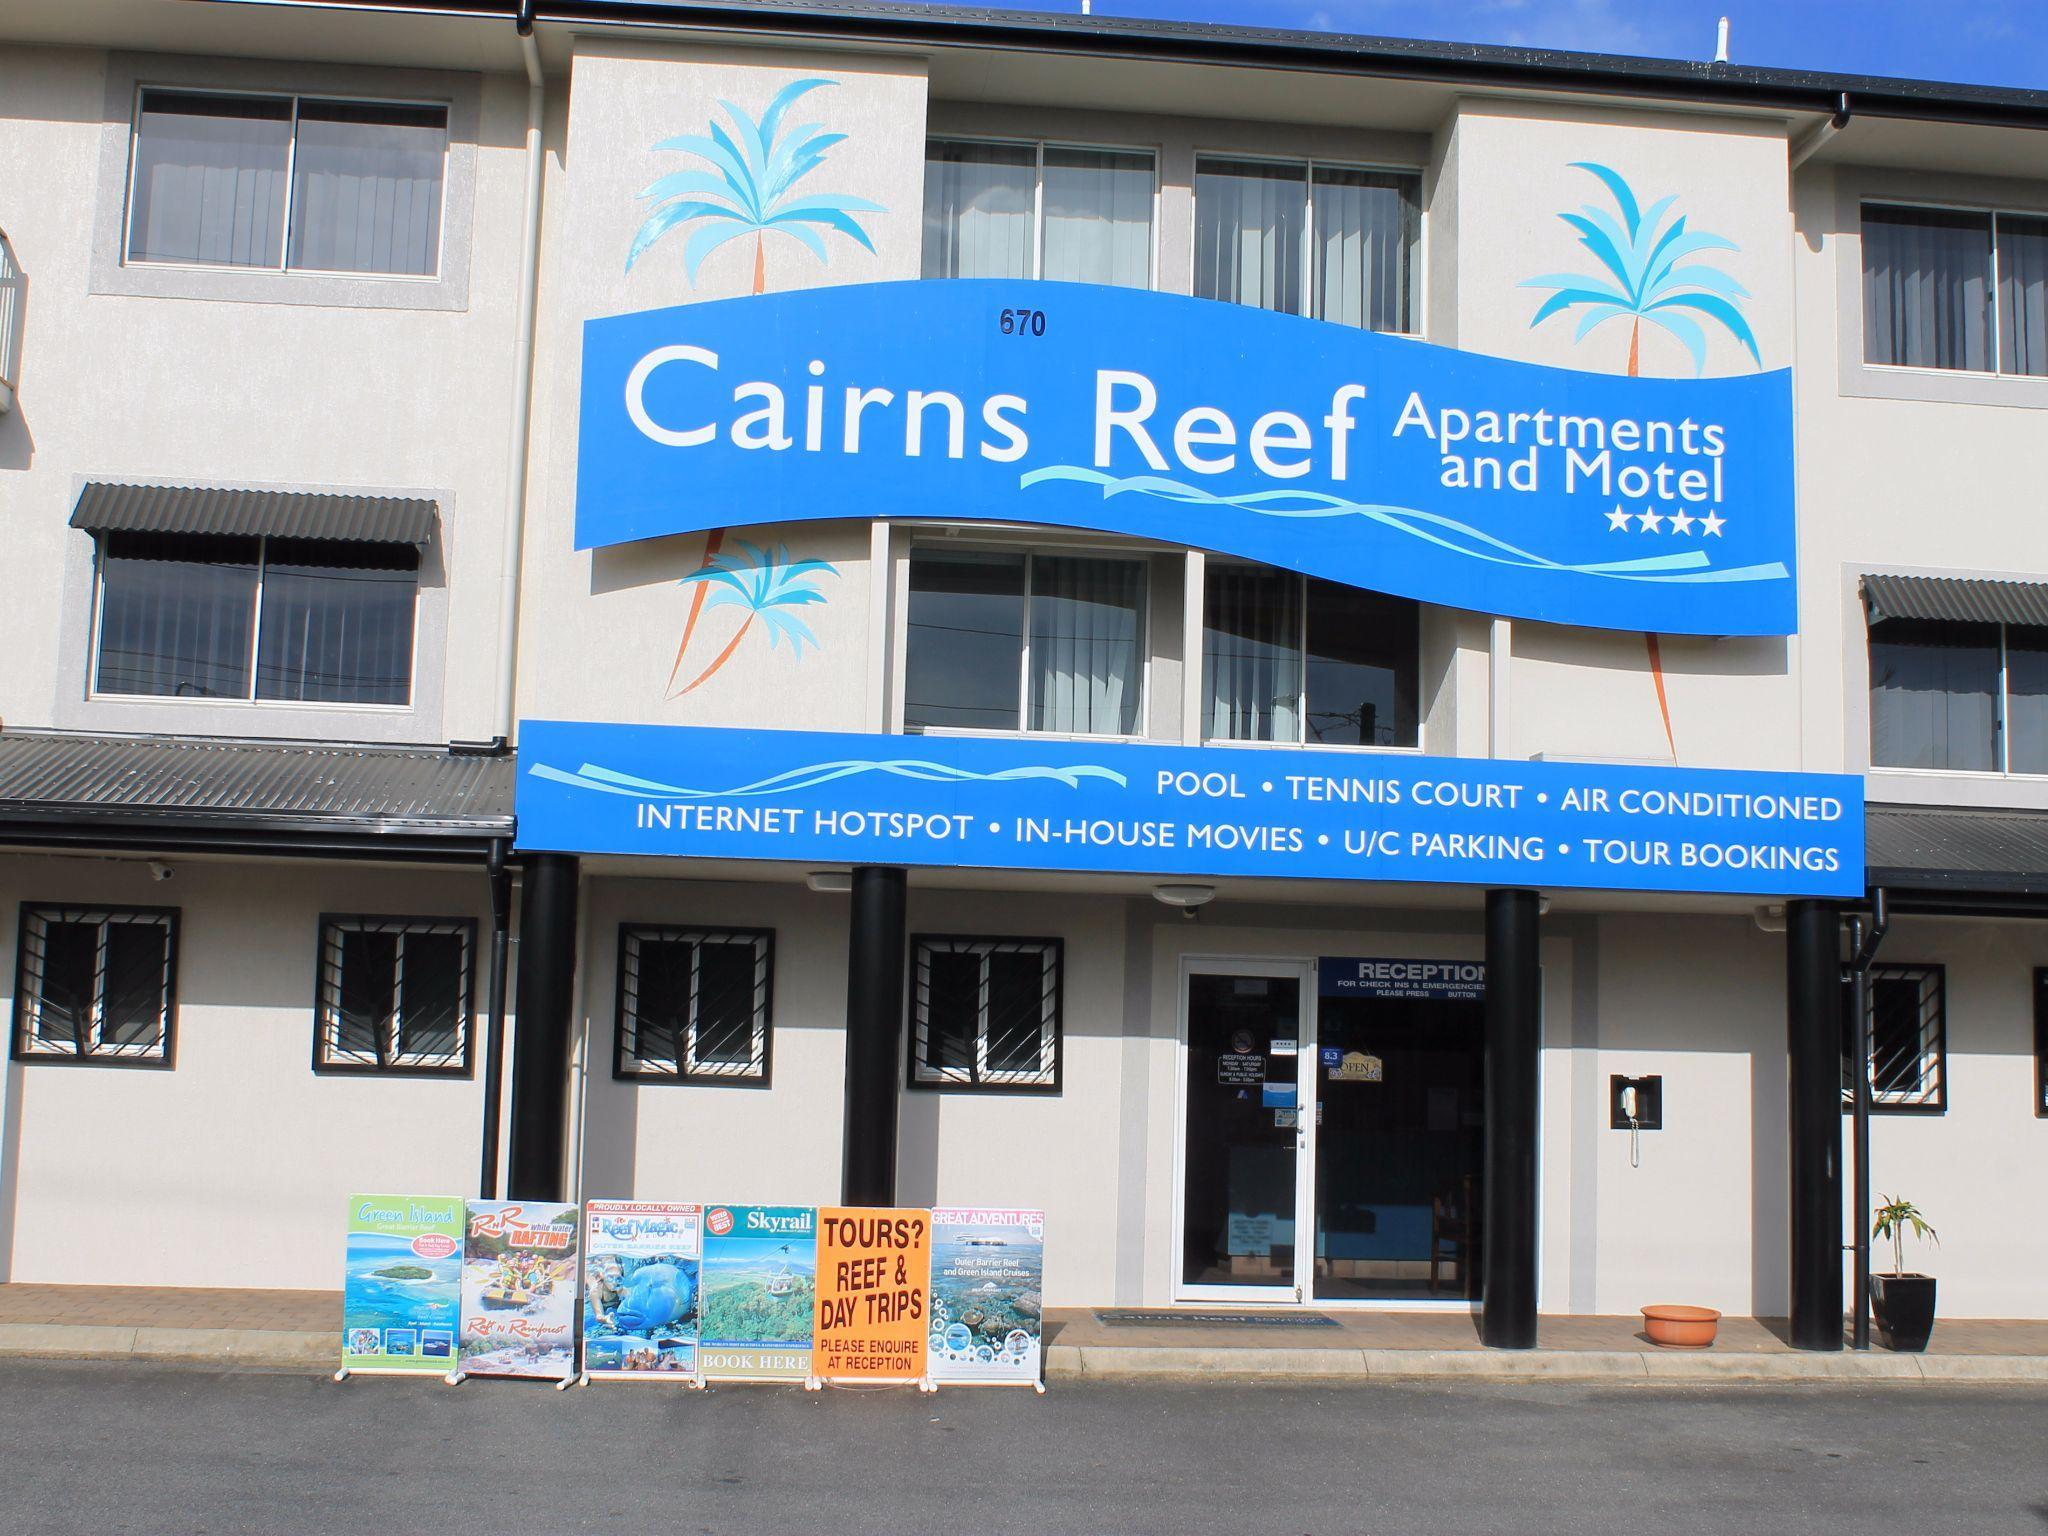 Cairns Reef Apartments & Motel Reviews